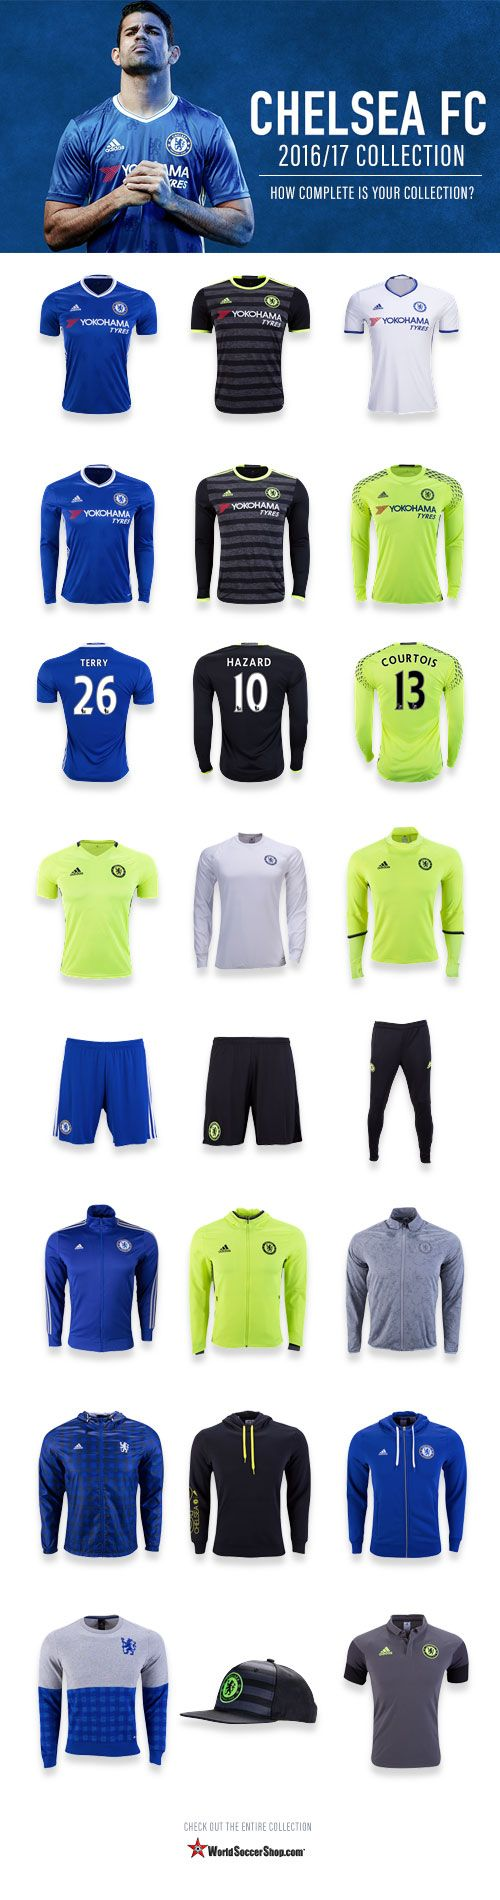 Chelsea FC welcome a new era with coach Antonio Conte, and stand out performances from the likes of Diego Costa,Michy Batshuayi, Eden Hazard & Victor Moses. Will they rise to beat Manchester United & Man City in the Premier League 2016?    Check out the complete 2016/17 Chelsea FC Collection at WorldSoccerShop.com and fill any gaps missing in yours. #BritishPremierLeague #Soccer #Apparel #Athletes #Training #Jerseys #Chelsea